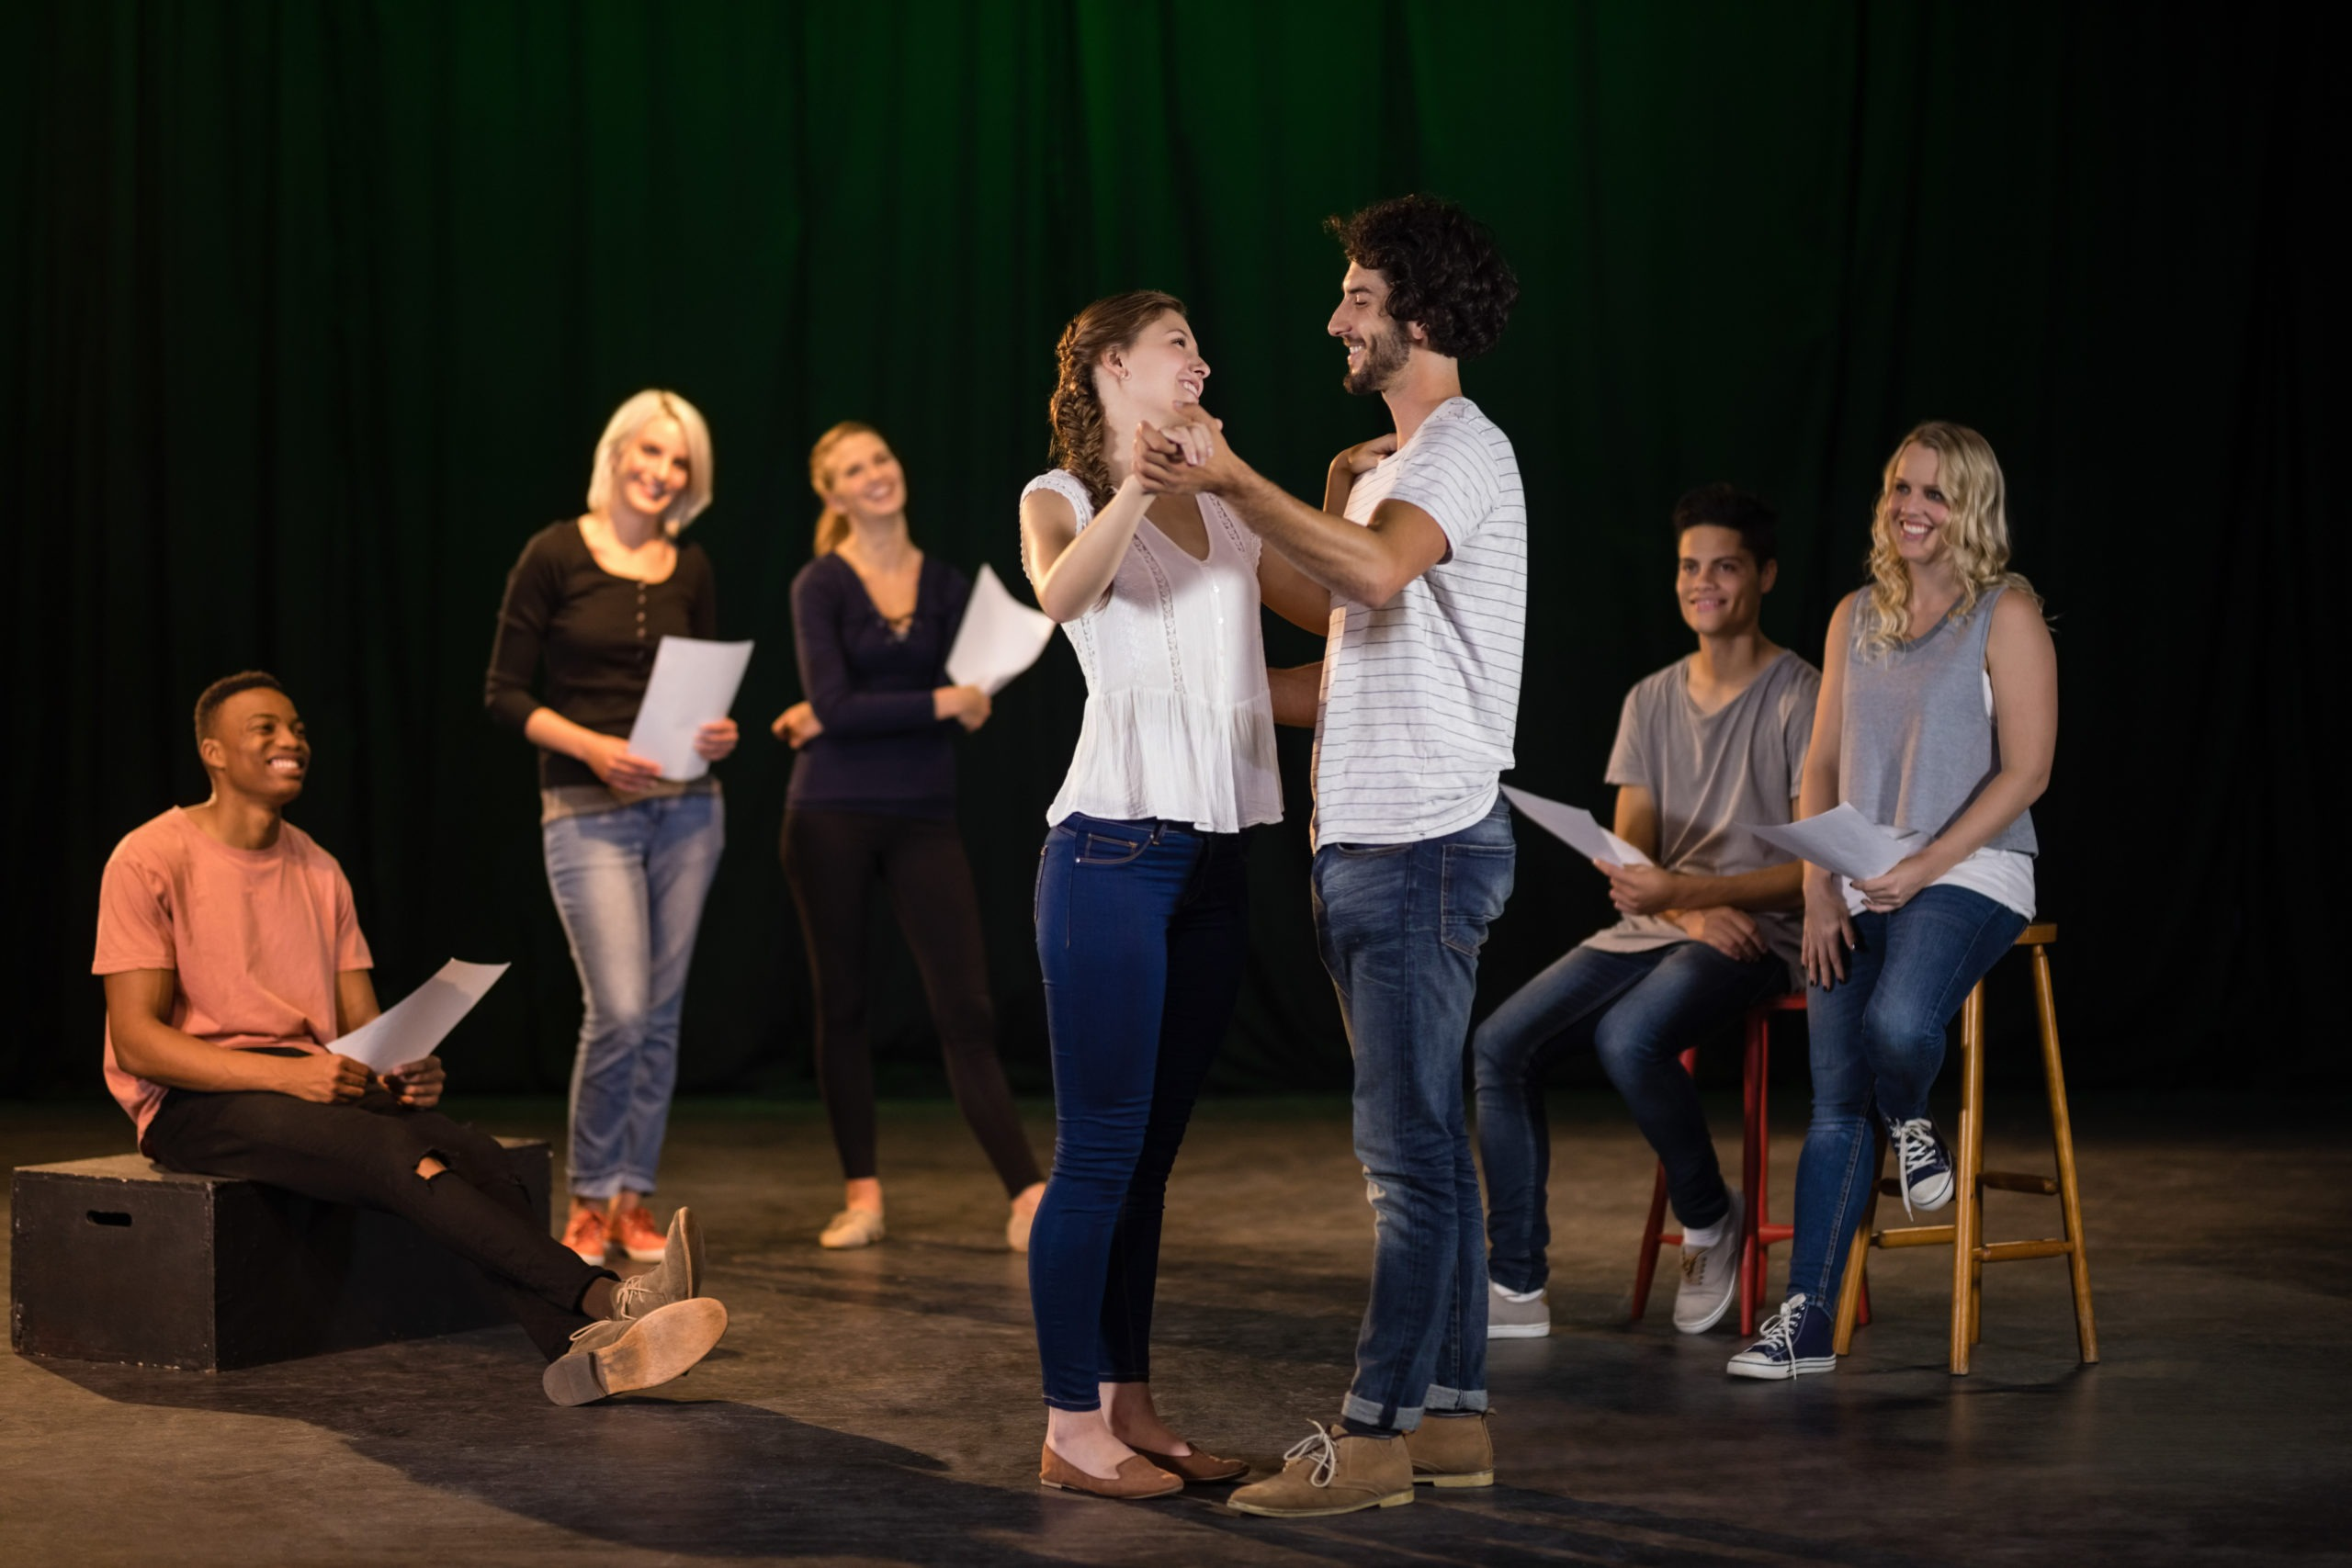 Actors practicing a play on stage. Five people form a semi-circle around a couple (man and woman) who look each other in the eye and are ready to dance waltz